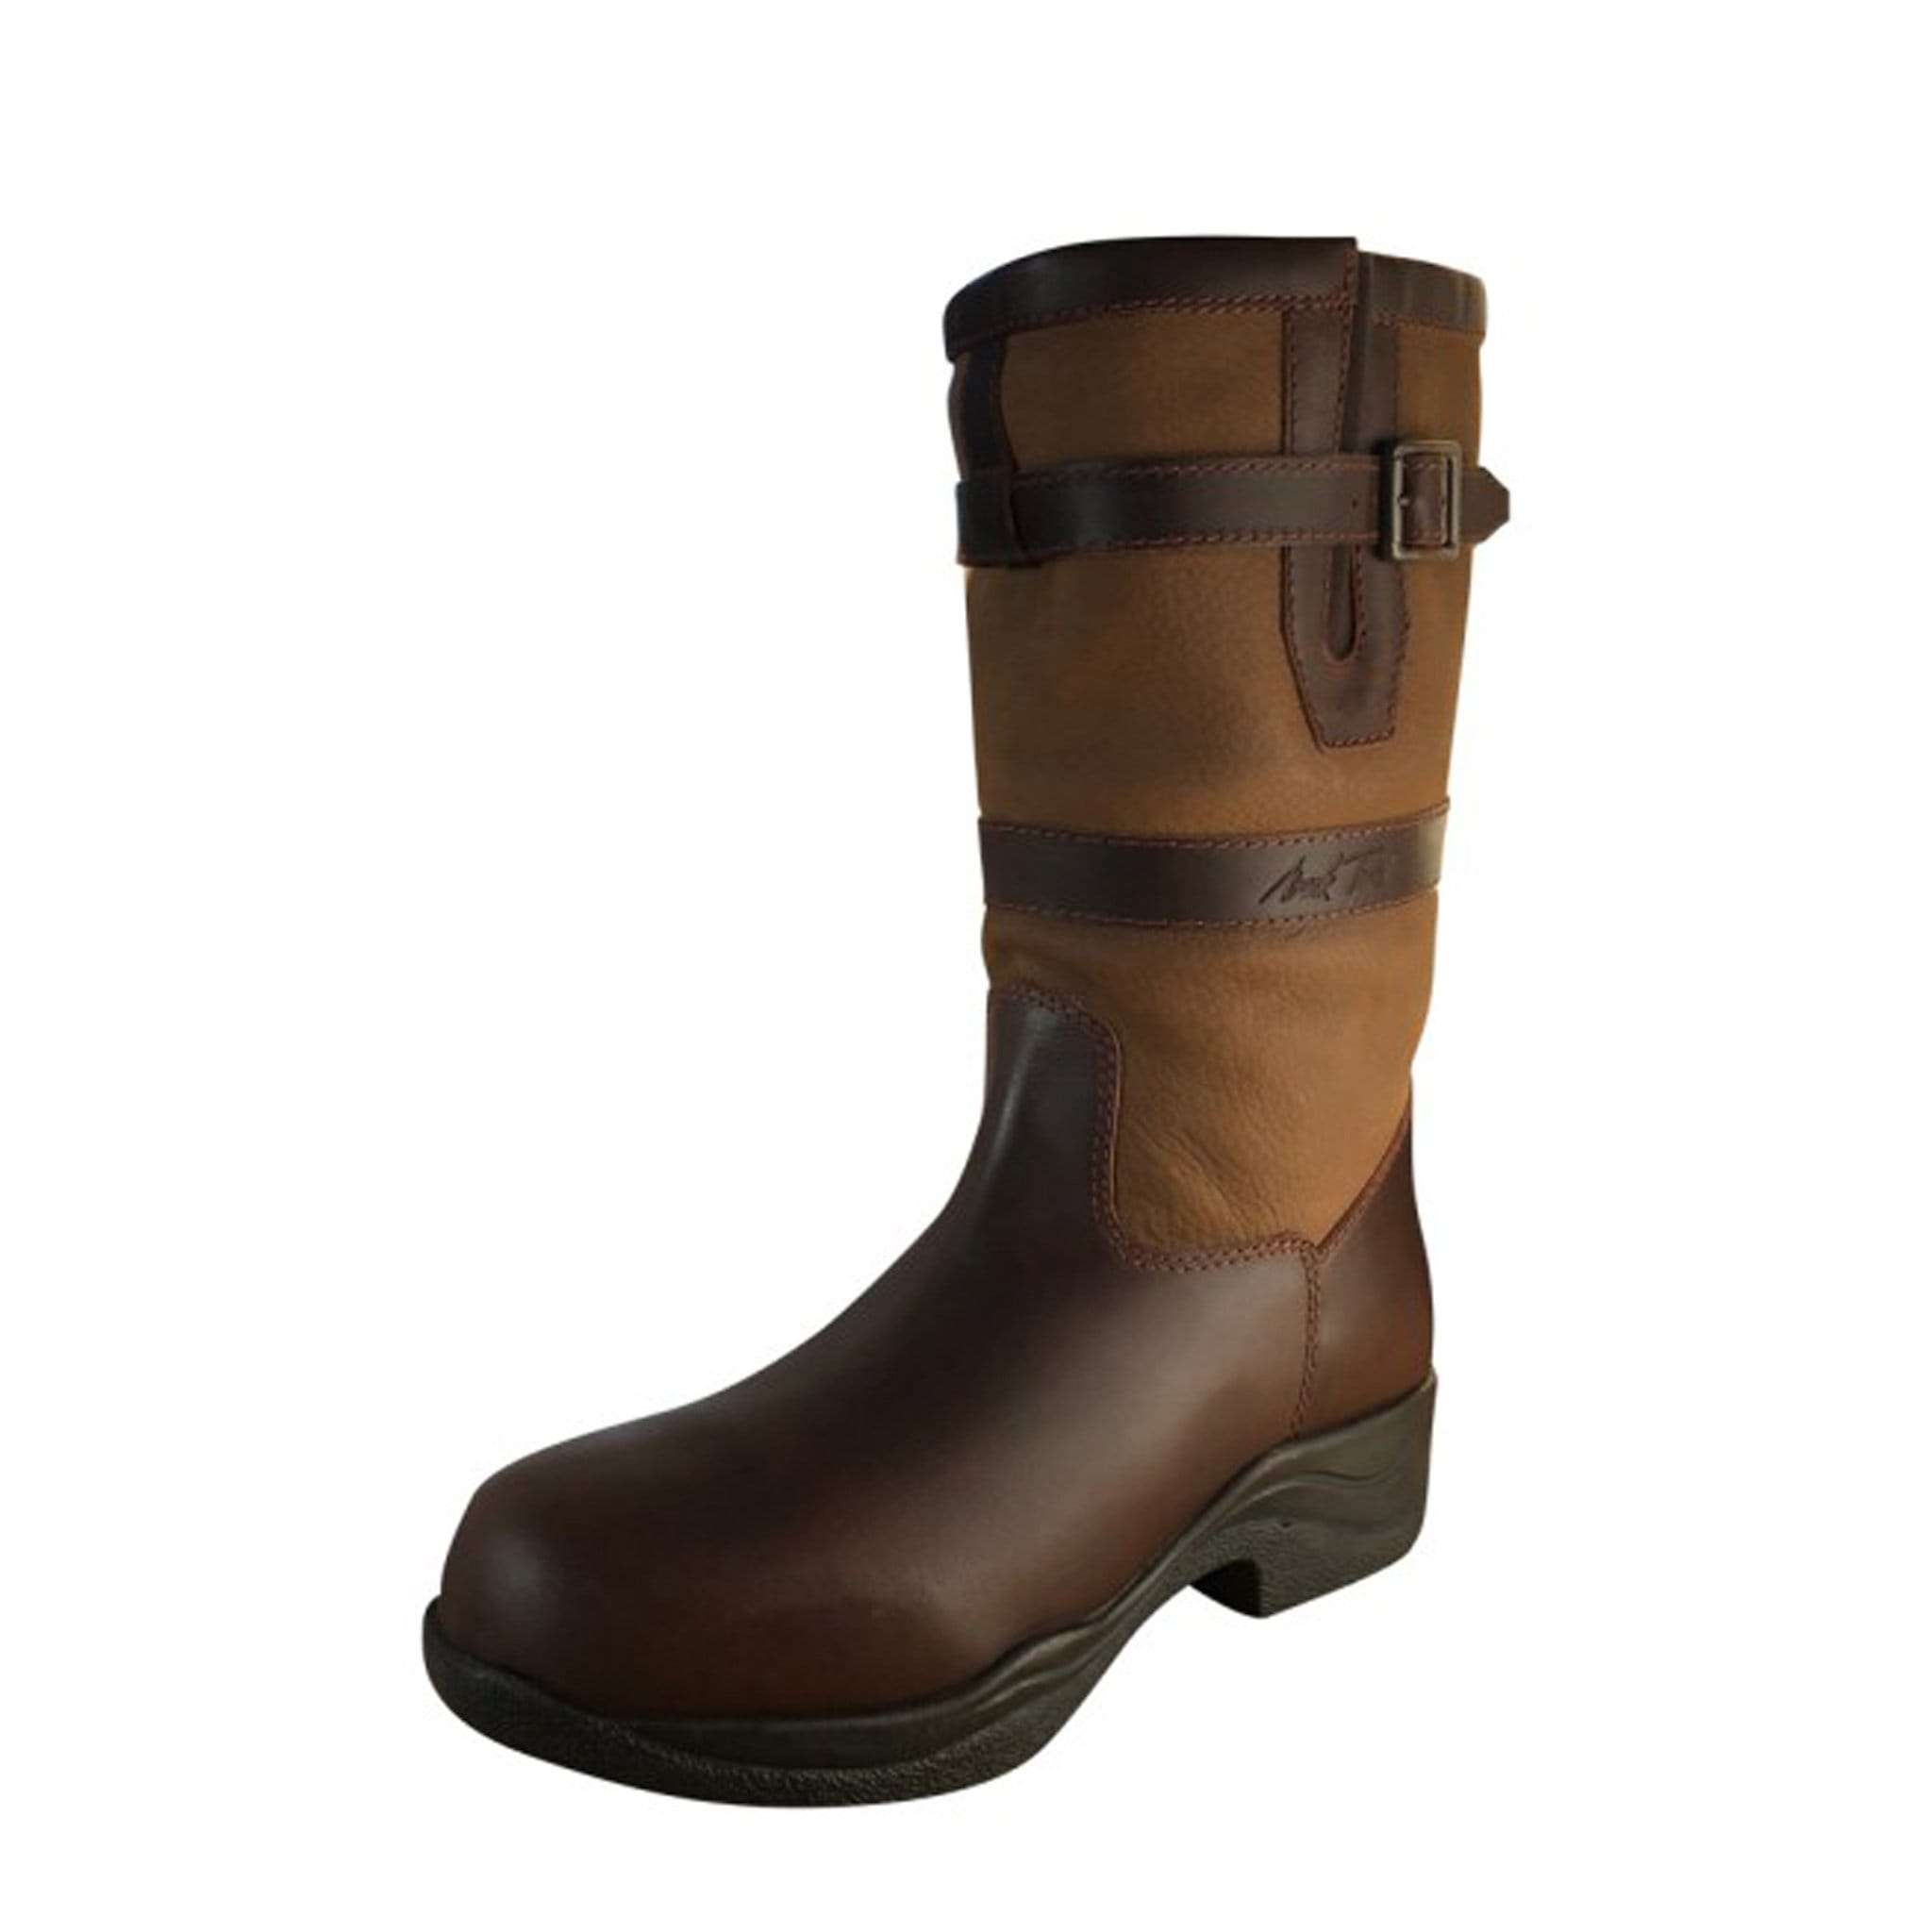 ... Short Leather Country Boot 139395 Larger Image ... c3d2ed61d